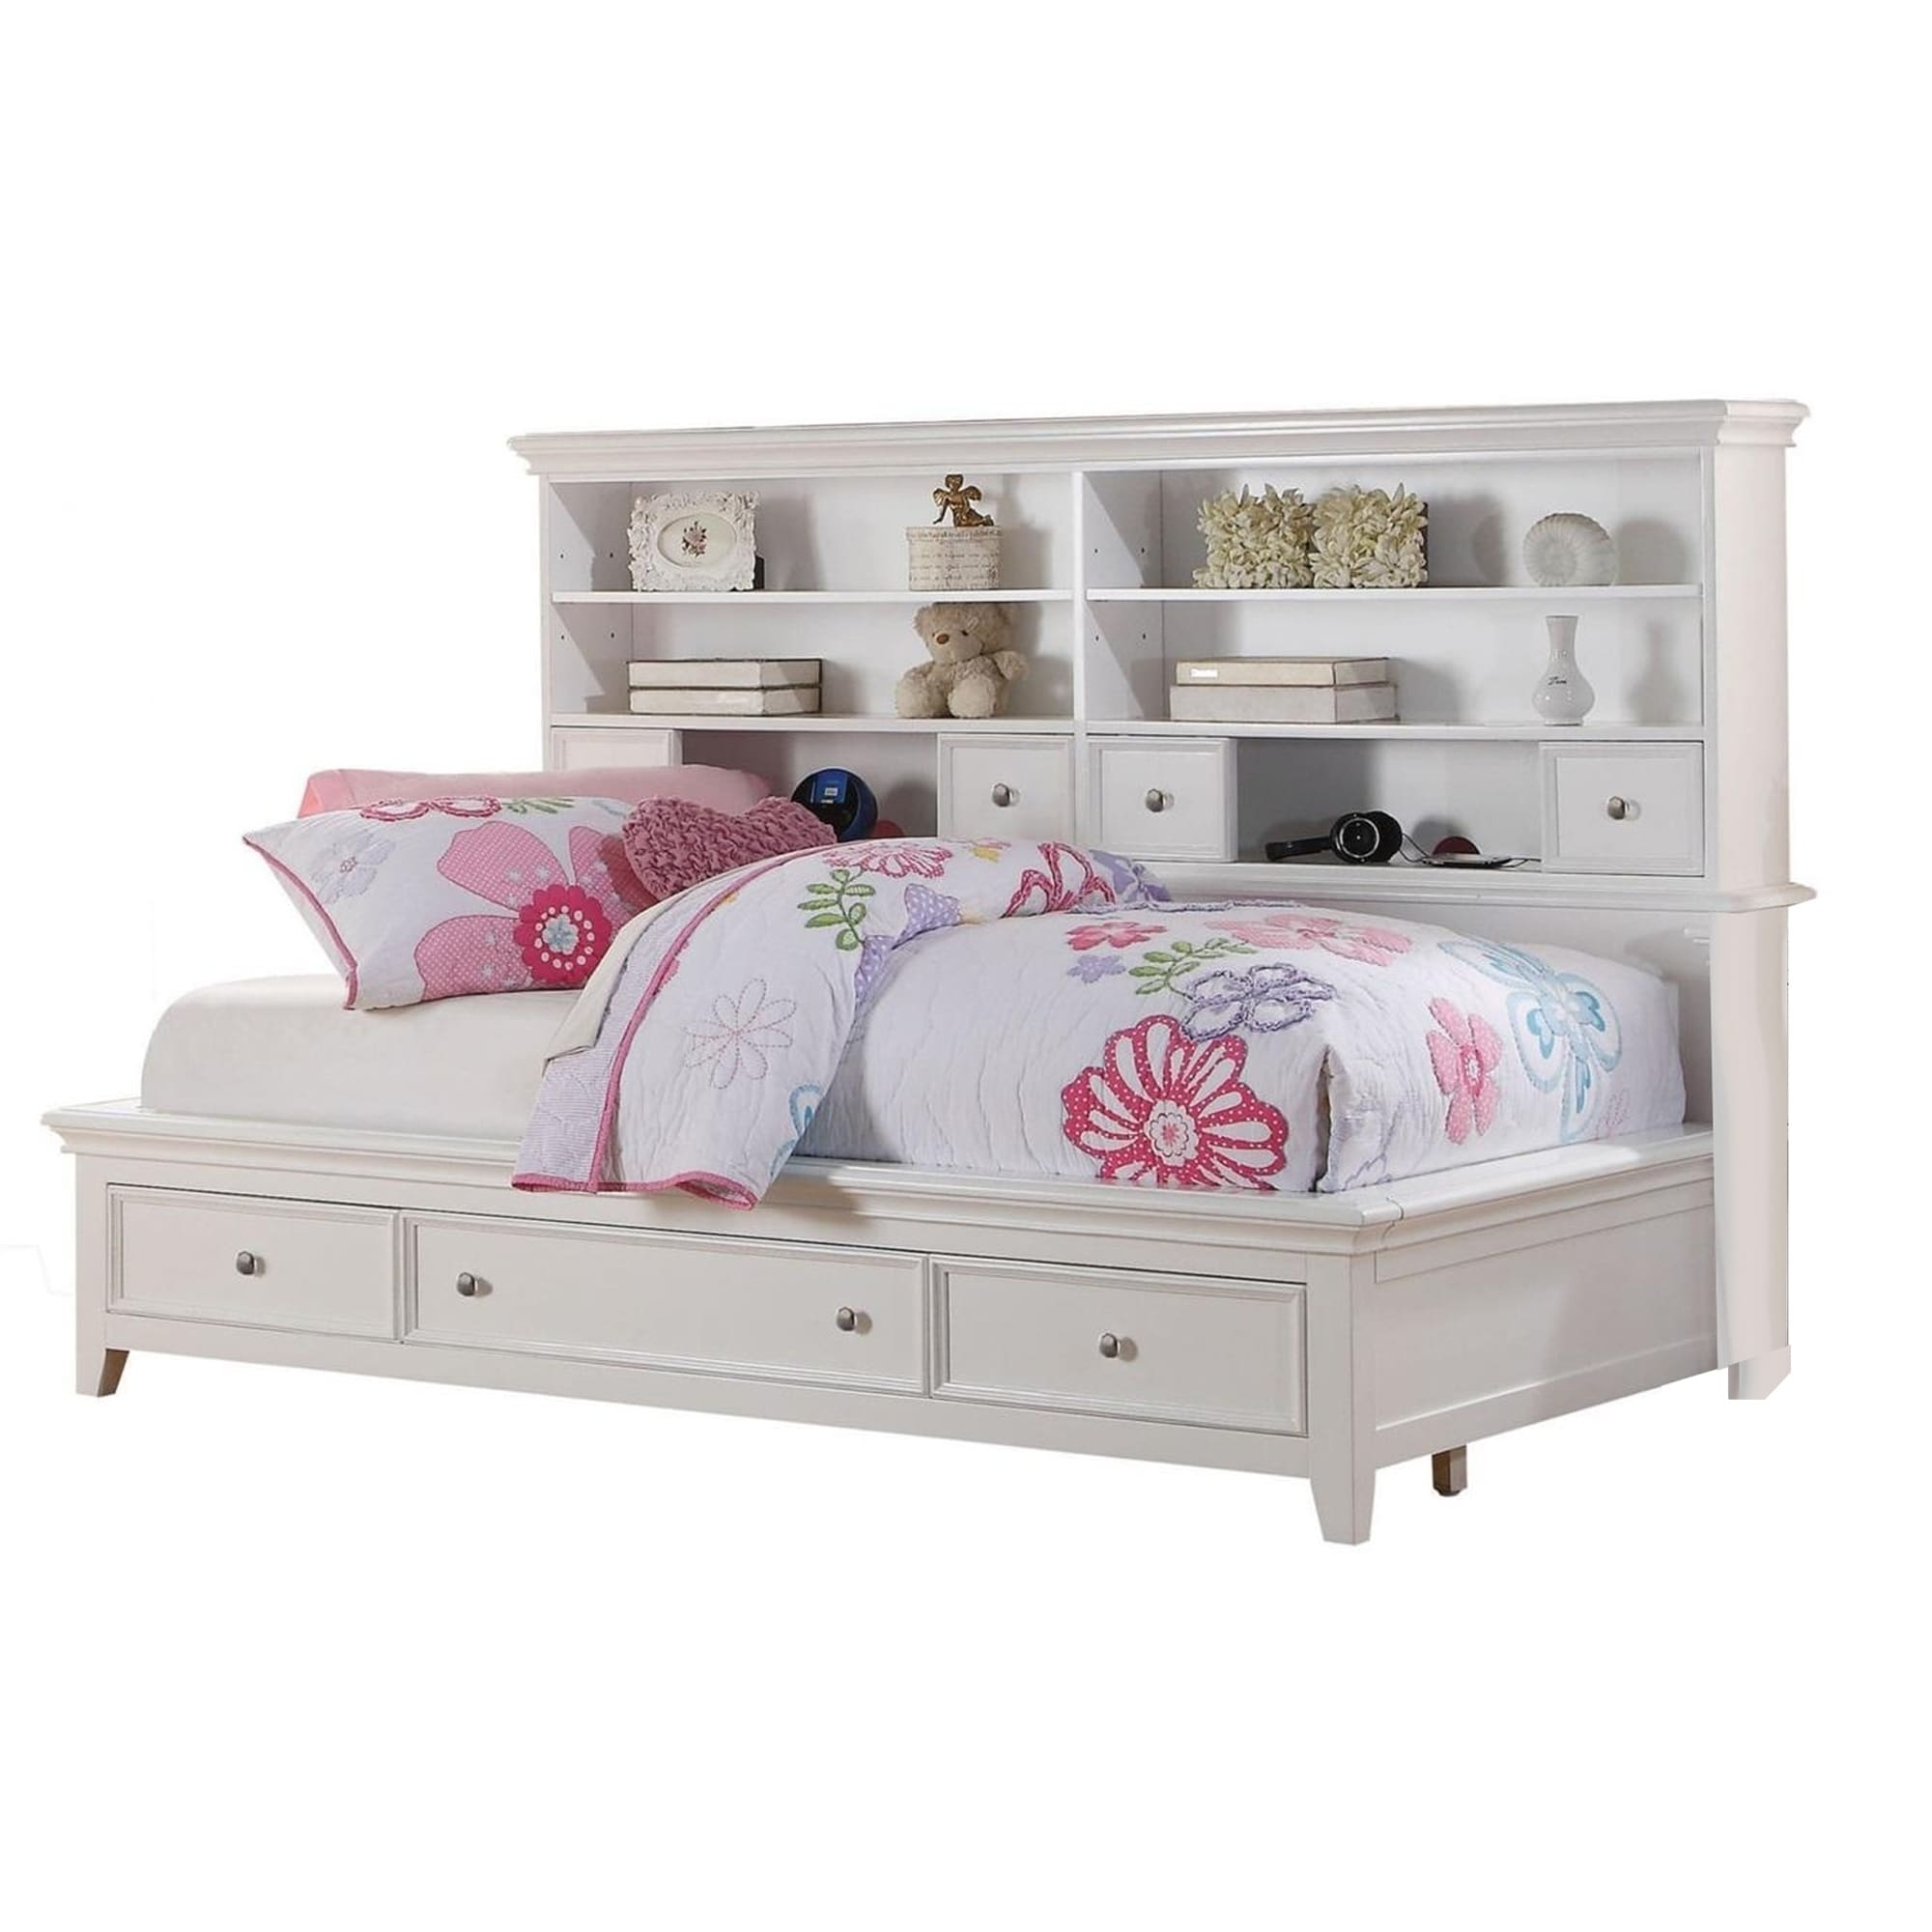 contemporary style twin size bed with bookcase headboard and multiple storage white